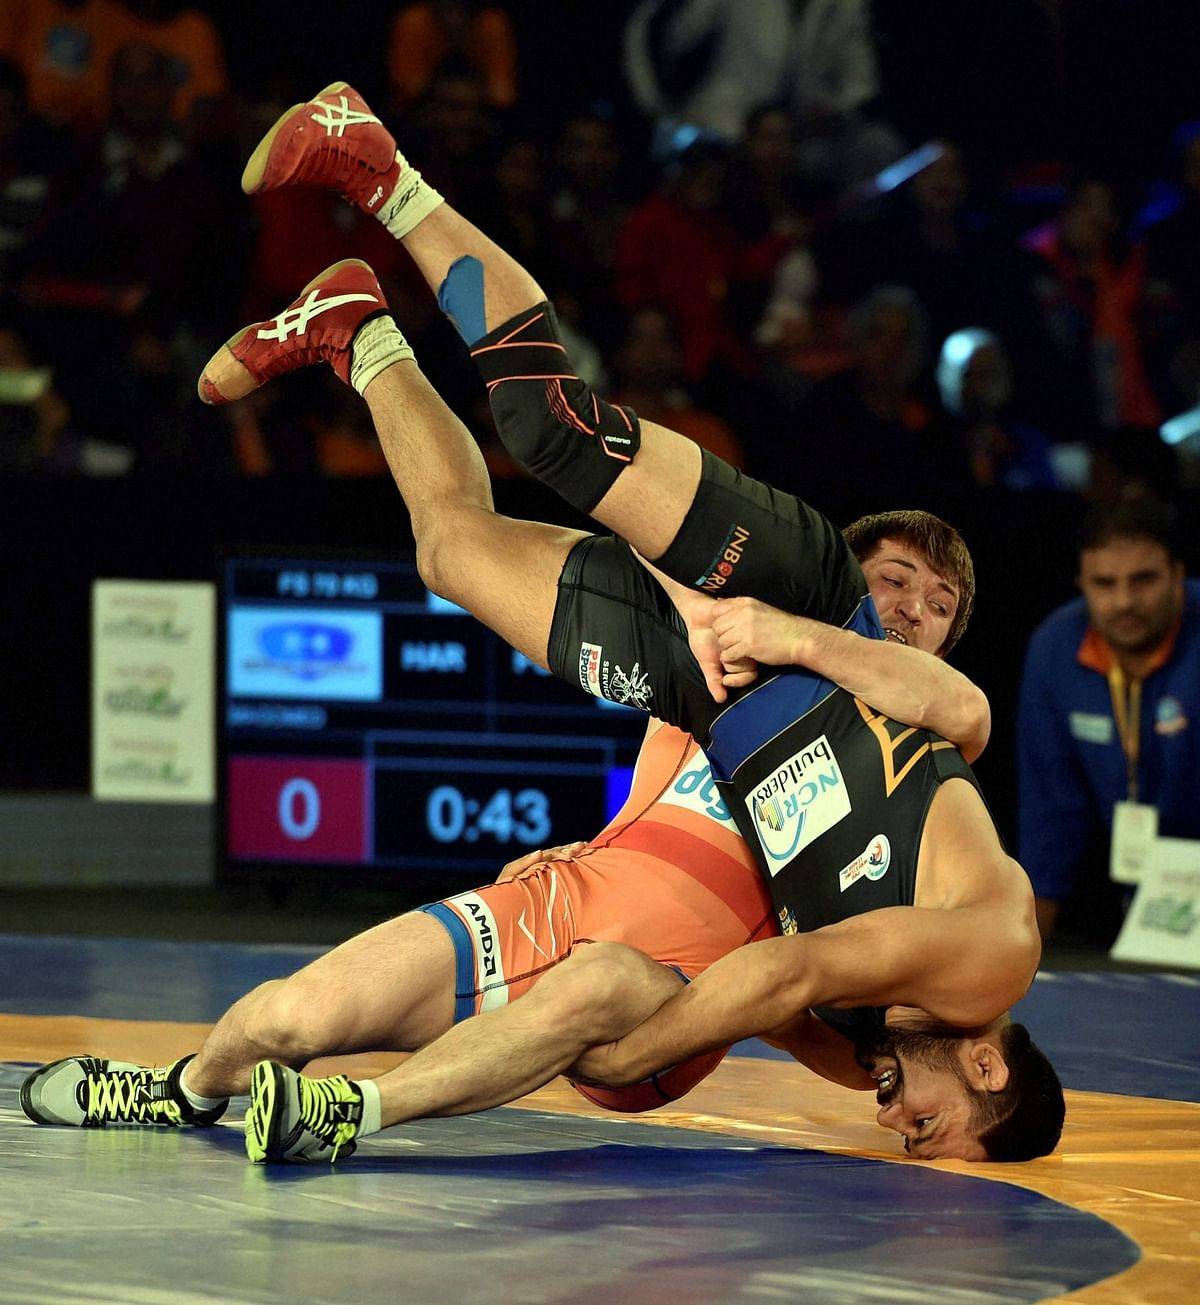 Haryana Hammers' Vladimir Khinchegashvili (red) competes against Sandeep Tomar of Punjab Royals in the men's 57 kg category. (Photo: PTI)